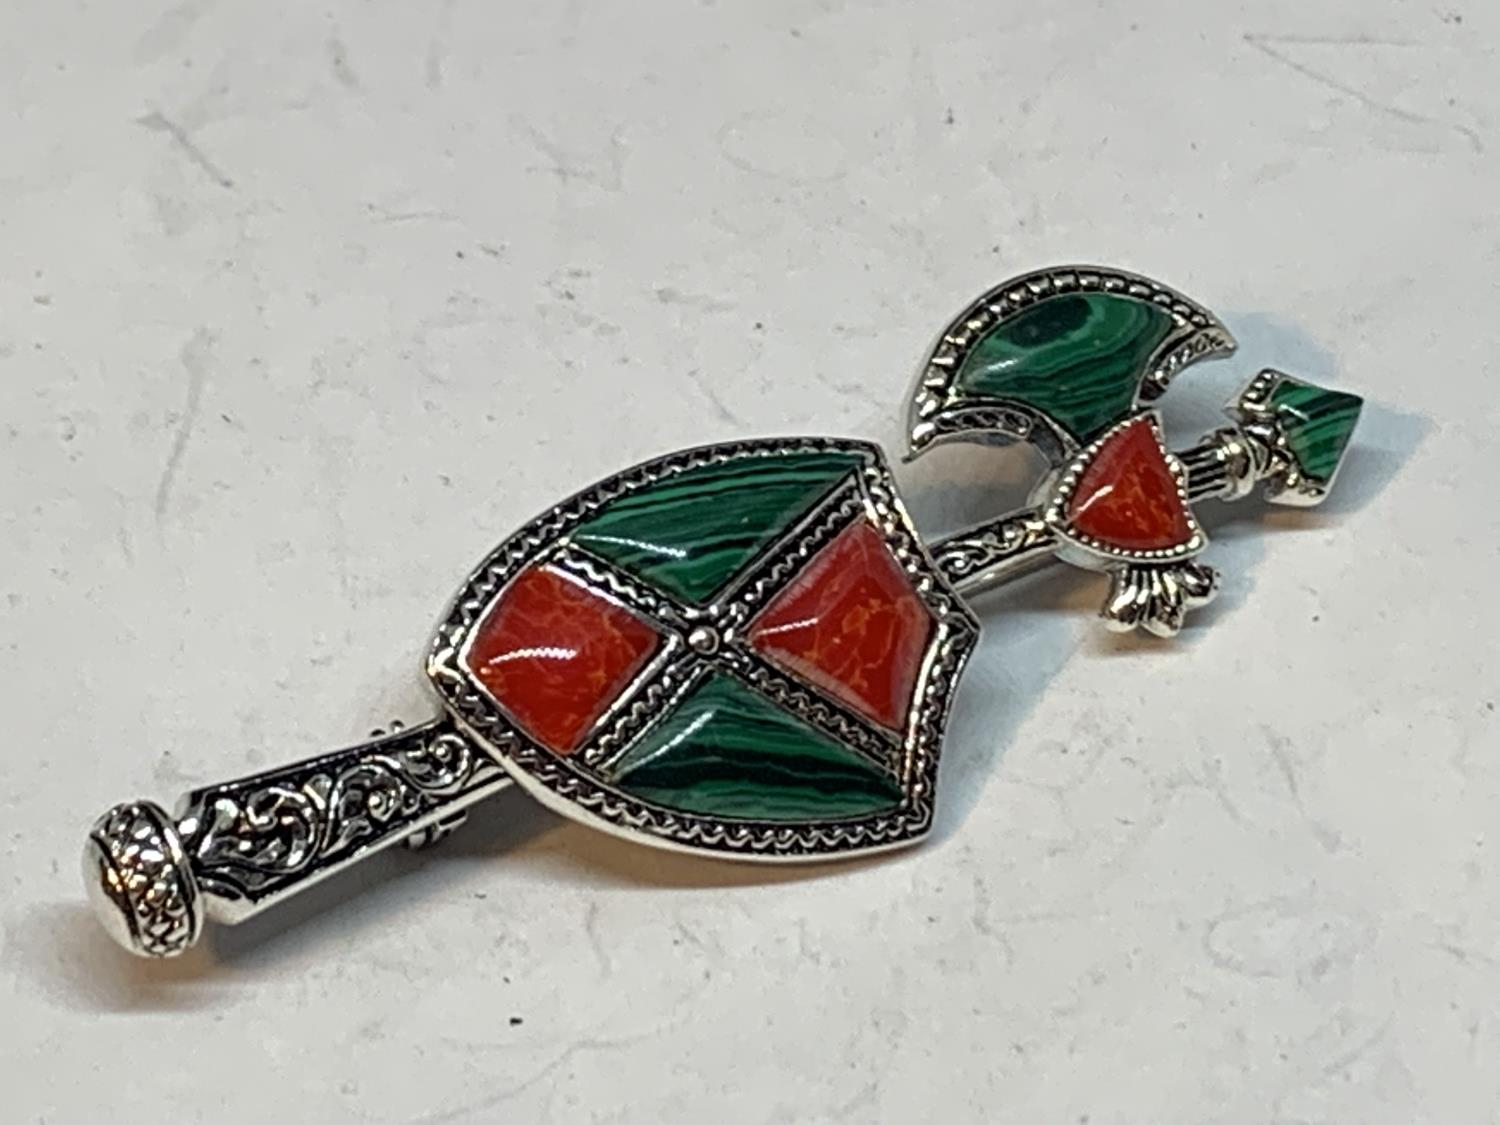 A SILVER BROOCH WITH GREEN AND RED ENAMEL AXE AND SHIELD DESIGN - Image 2 of 4